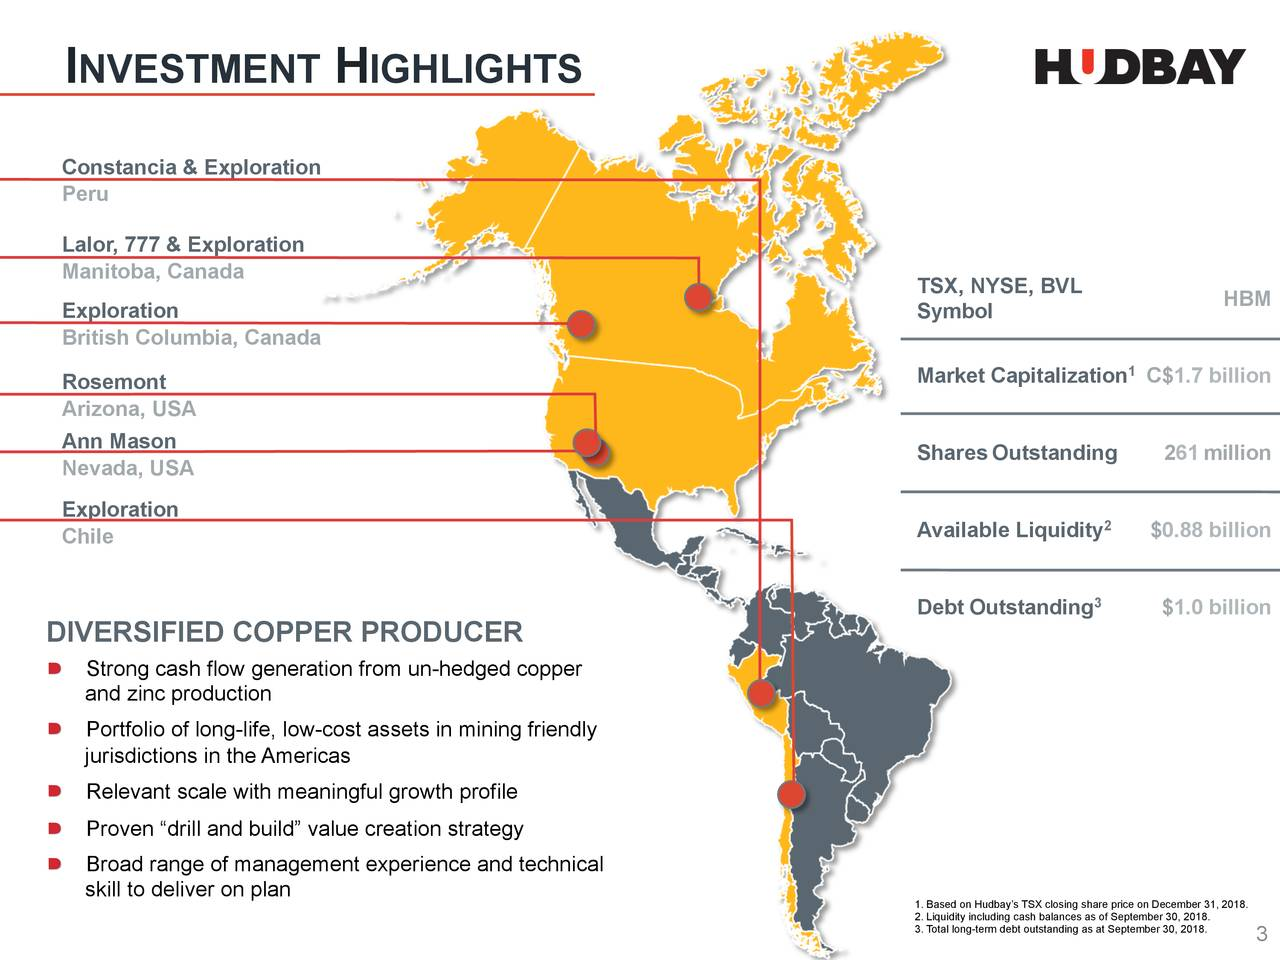 """Constancia & Exploration Peru Lalor, 777 & Exploration Manitoba, Canada TSX, NYSE, BVL Exploration Symbol HBM British Columbia, Canada Rosemont Market Capitalization C$1.7 billion Arizona, USA Ann Mason Nevada, USA SharesOutstanding 261million Exploration Chile AvailableLiquidity $0.88 billion 3 Debt Outstanding $1.0 billion DIVERSIFIED COPPER PRODUCER ▯ Strong cash flow generation from un-hedged copper and zinc production ▯ Portfolio of long-life, low-cost assets in mining friendly jurisdictions in the Americas ▯ Relevant scale with meaningful growth profile ▯ Proven """"drill and build"""" value creation strategy ▯ Broad range of management experience and technical skill to deliver on plan 2. Liquidity including cash balances as of September 30, 2018.018. 3. Total long-term debt outstand3ng as at September 30, 2018."""